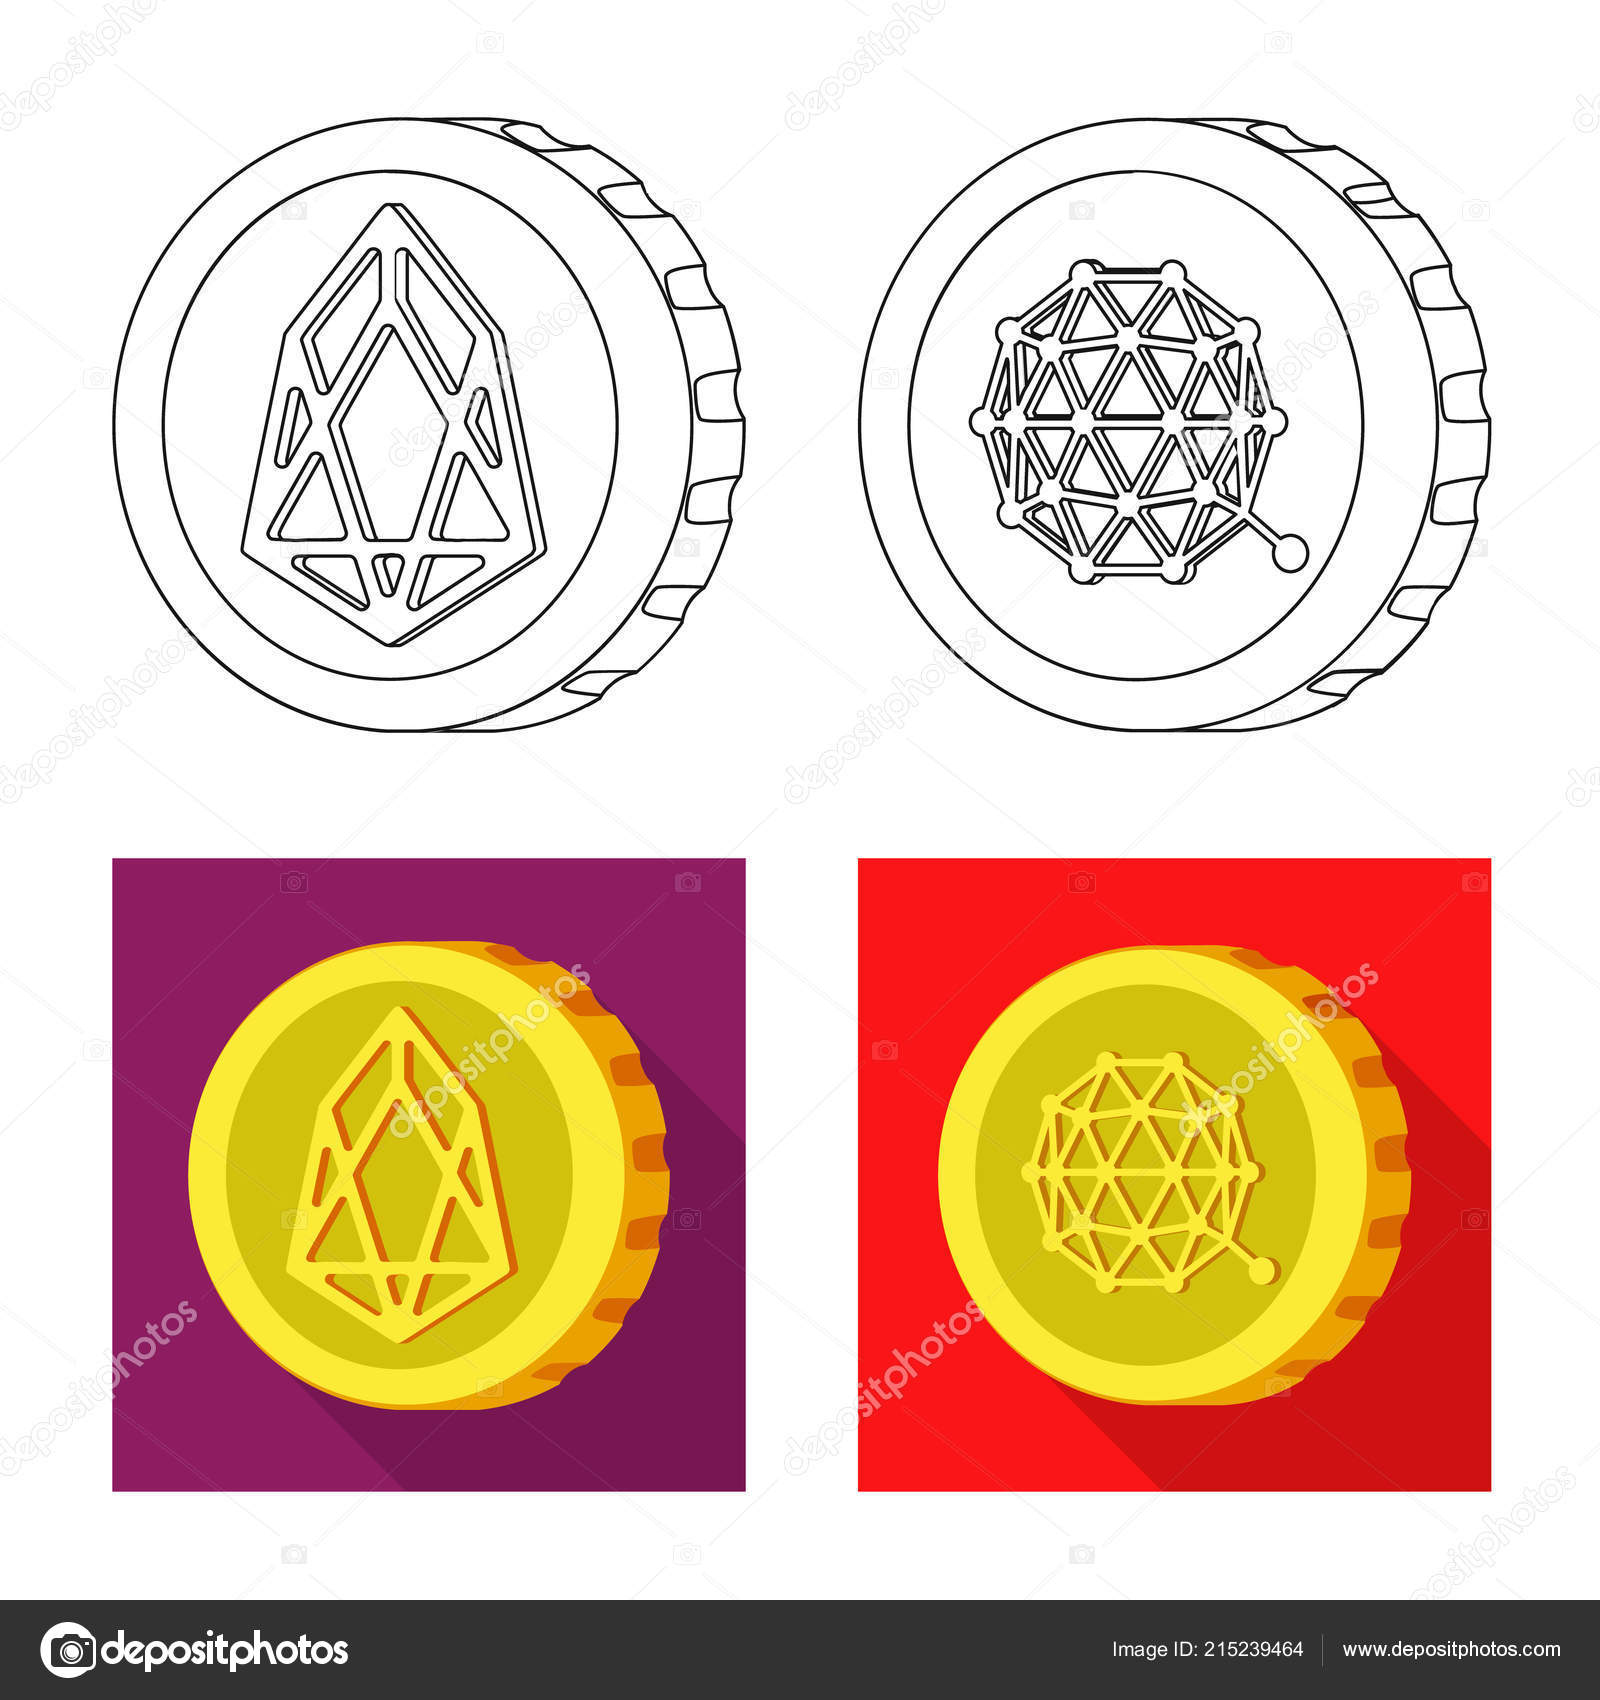 Vector Illustration Of Cryptocurrency And Coin Sign Collection Of